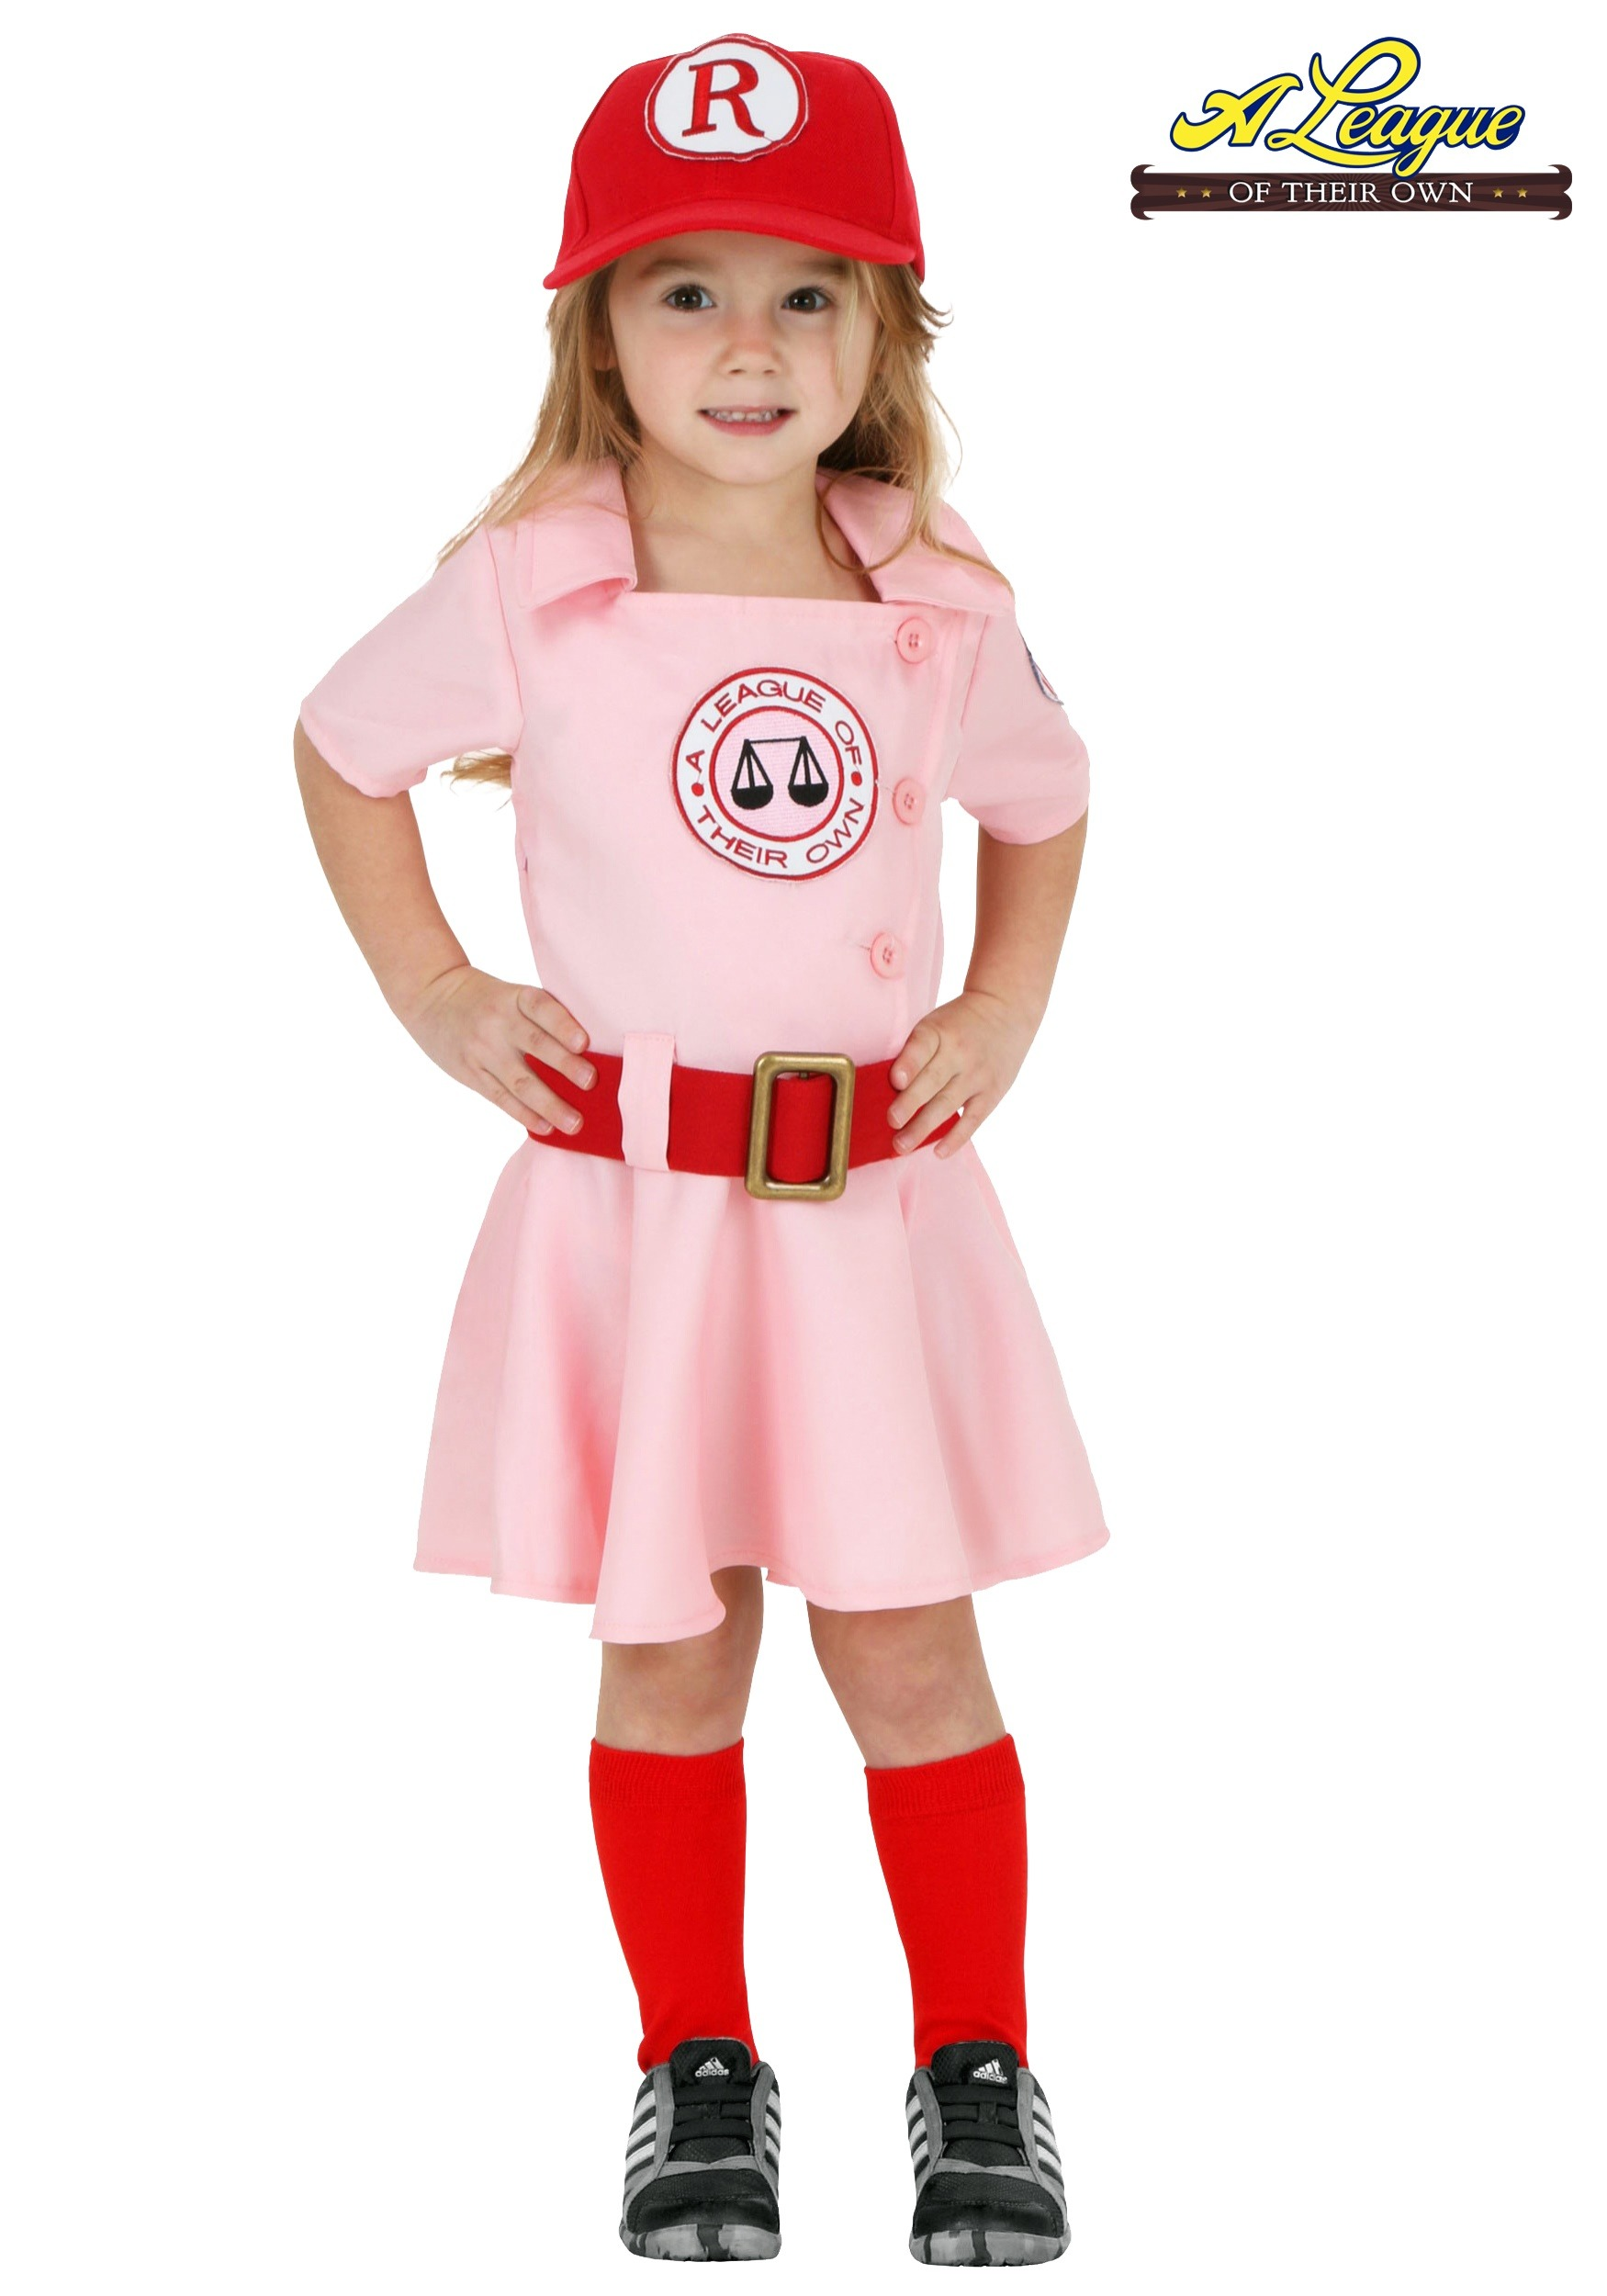 A League of Their Own Costume - Camille Styles  |A League Of Their Own Costume